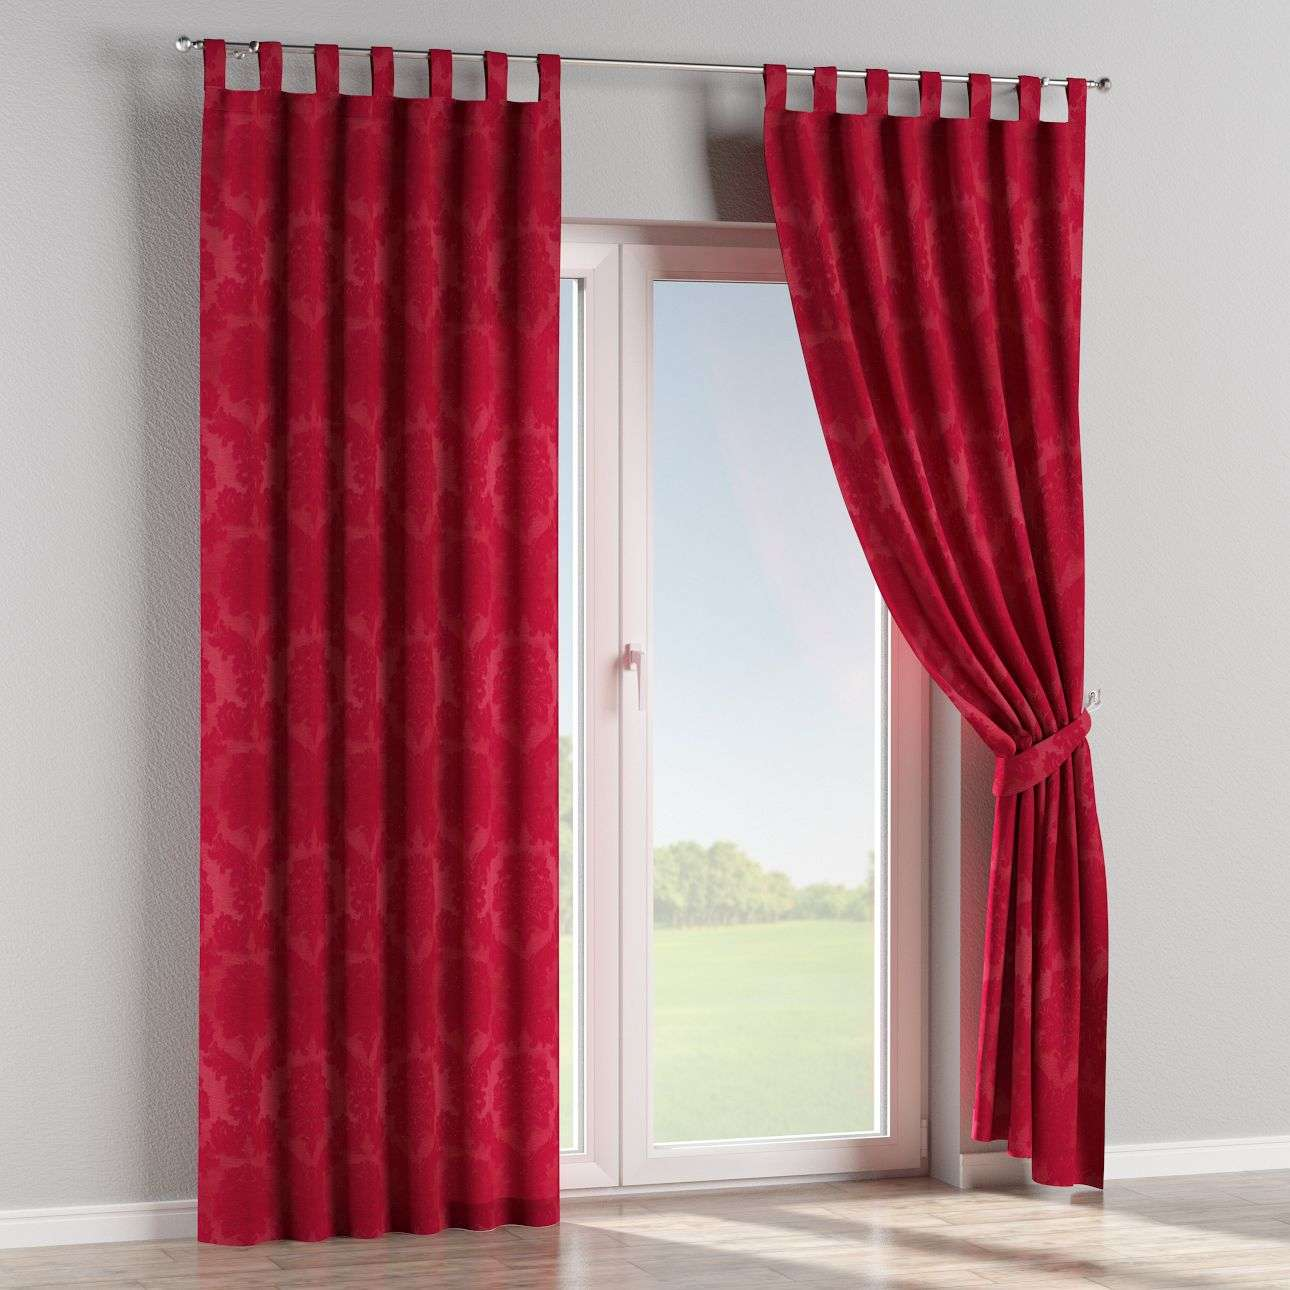 Tab top curtains 130 × 260 cm (51 × 102 inch) in collection Damasco, fabric: 613-13